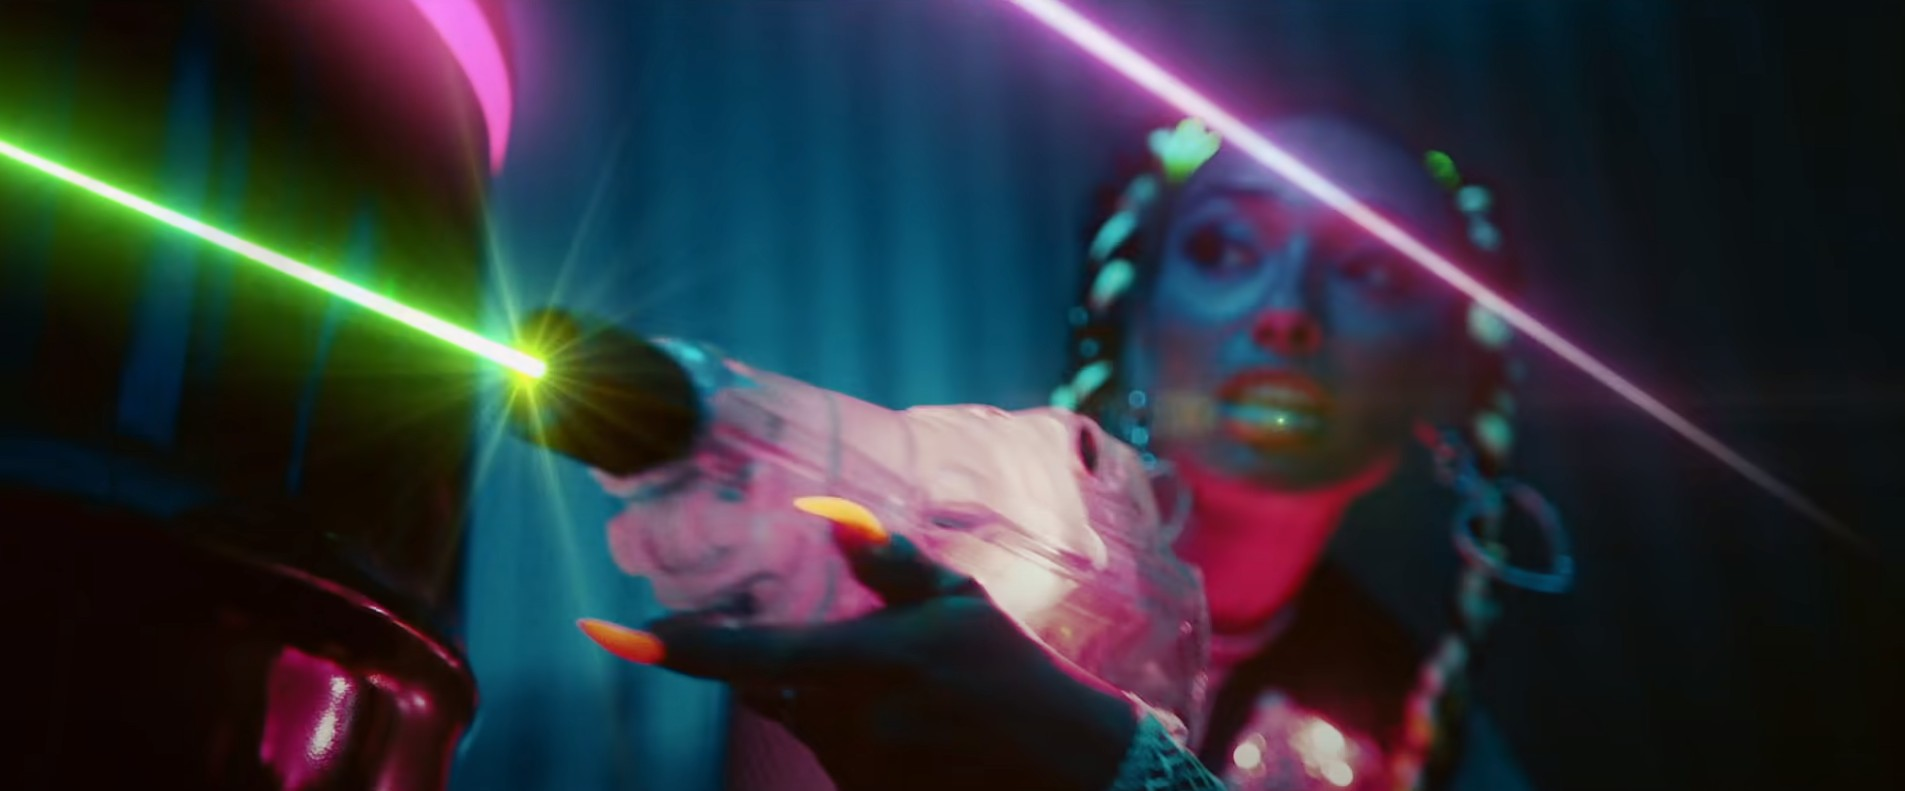 VFX for new music video by David Guetta and Sia